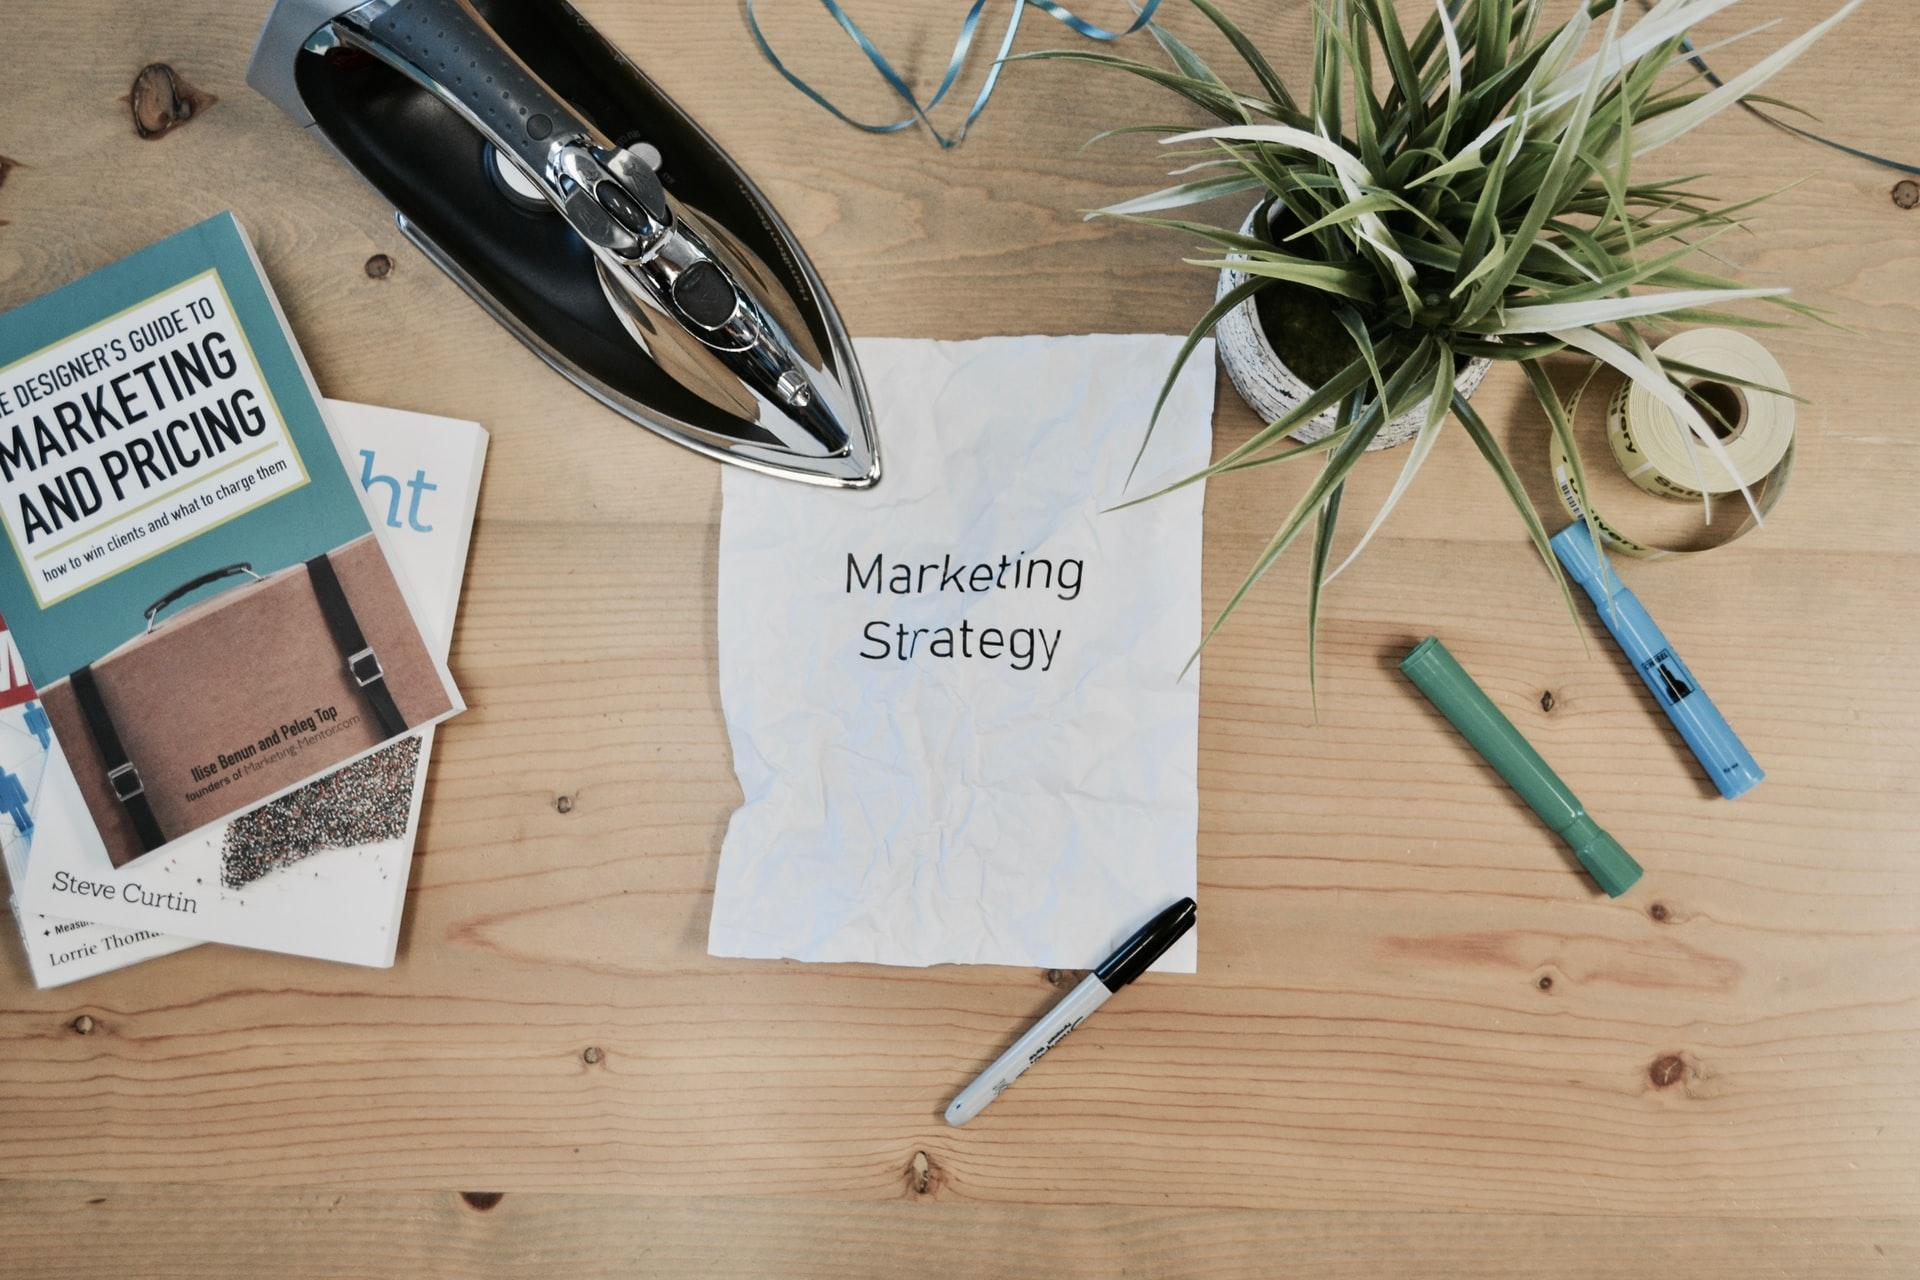 Marketing Today: Make a Plan, and Make It Work